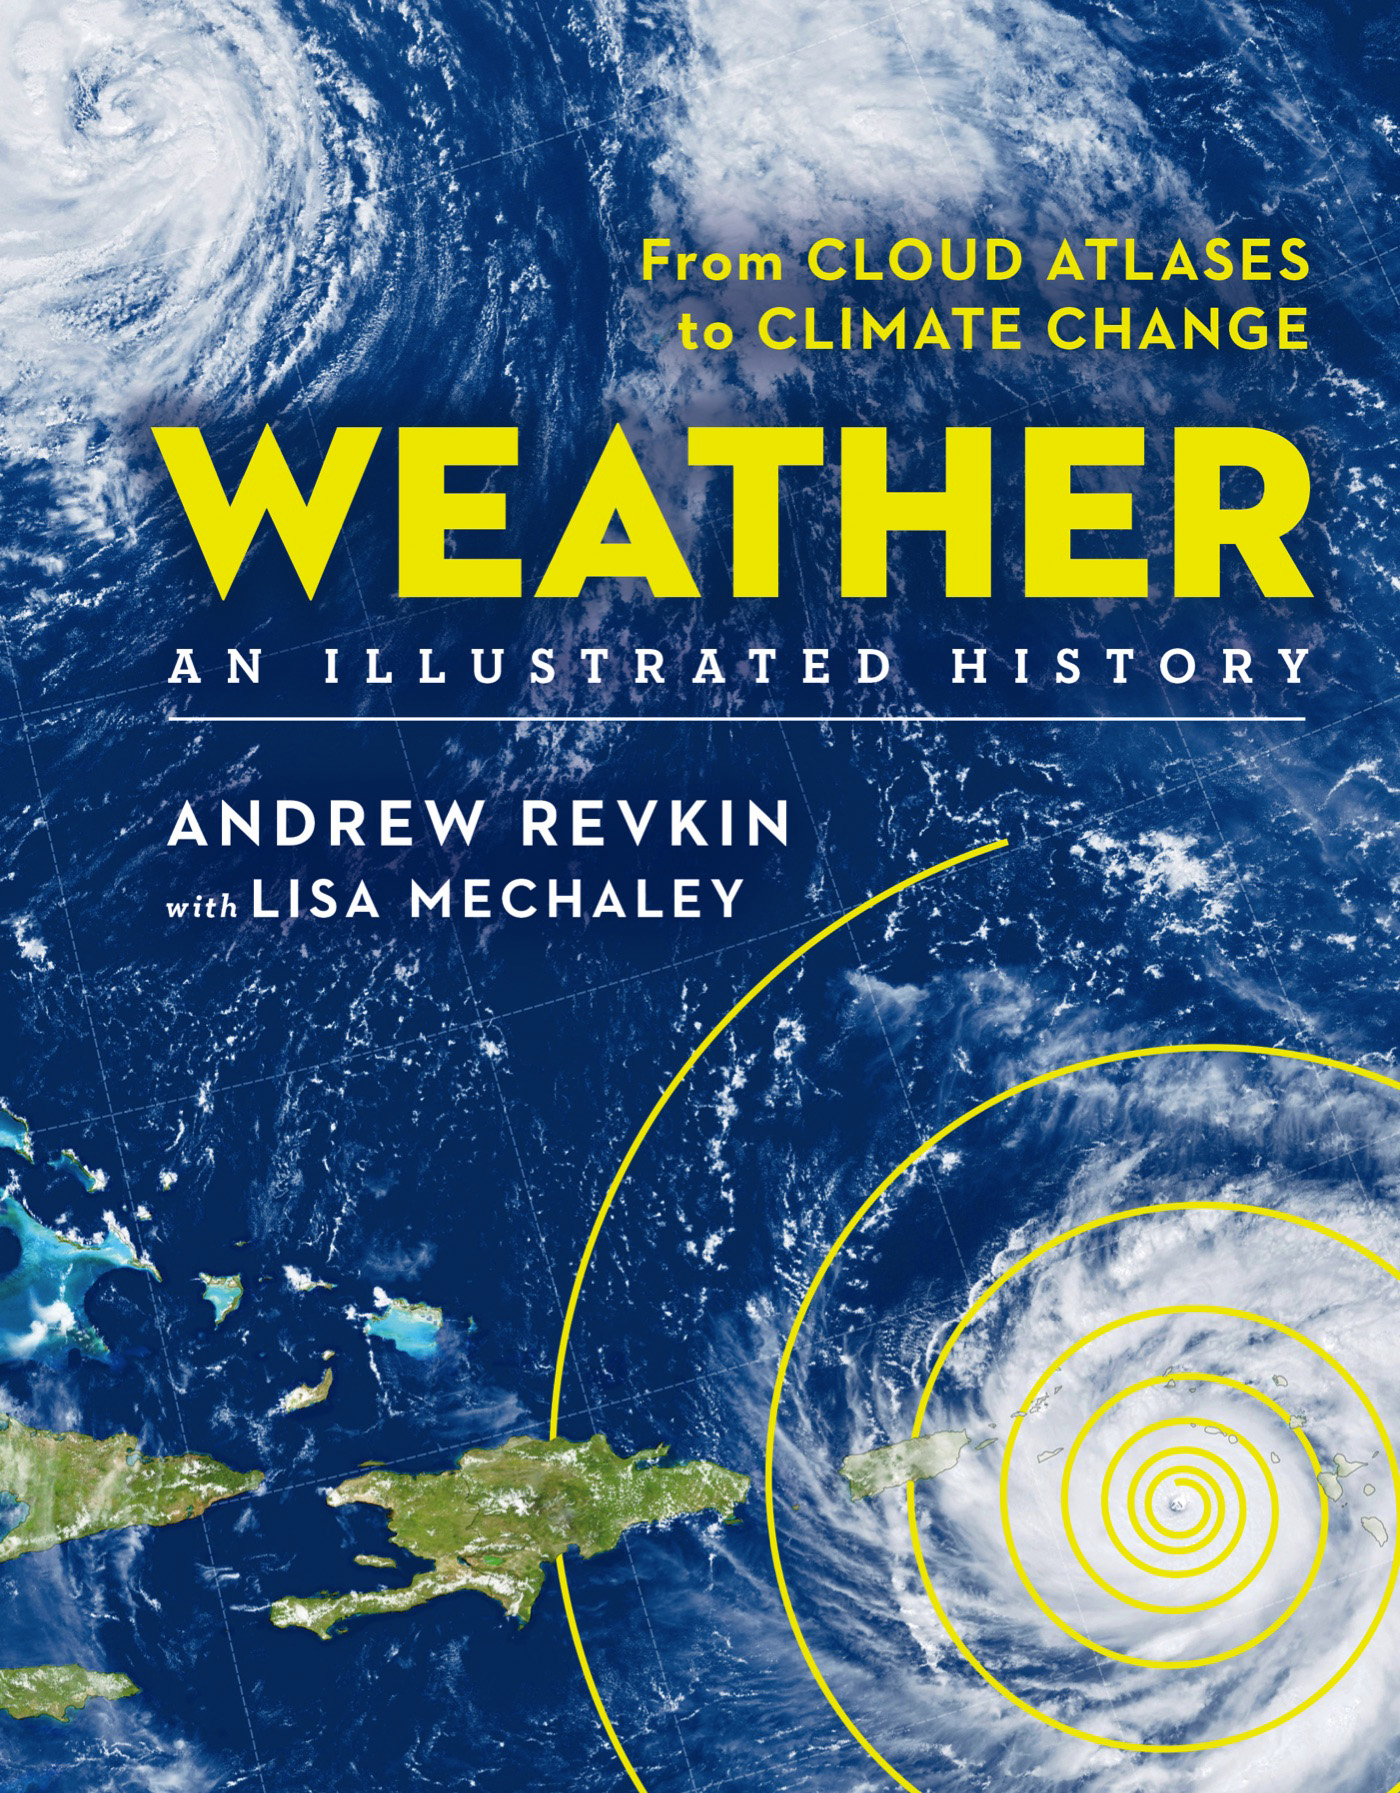 Weather an illustrated history : from cloud atlases to climate change cover image